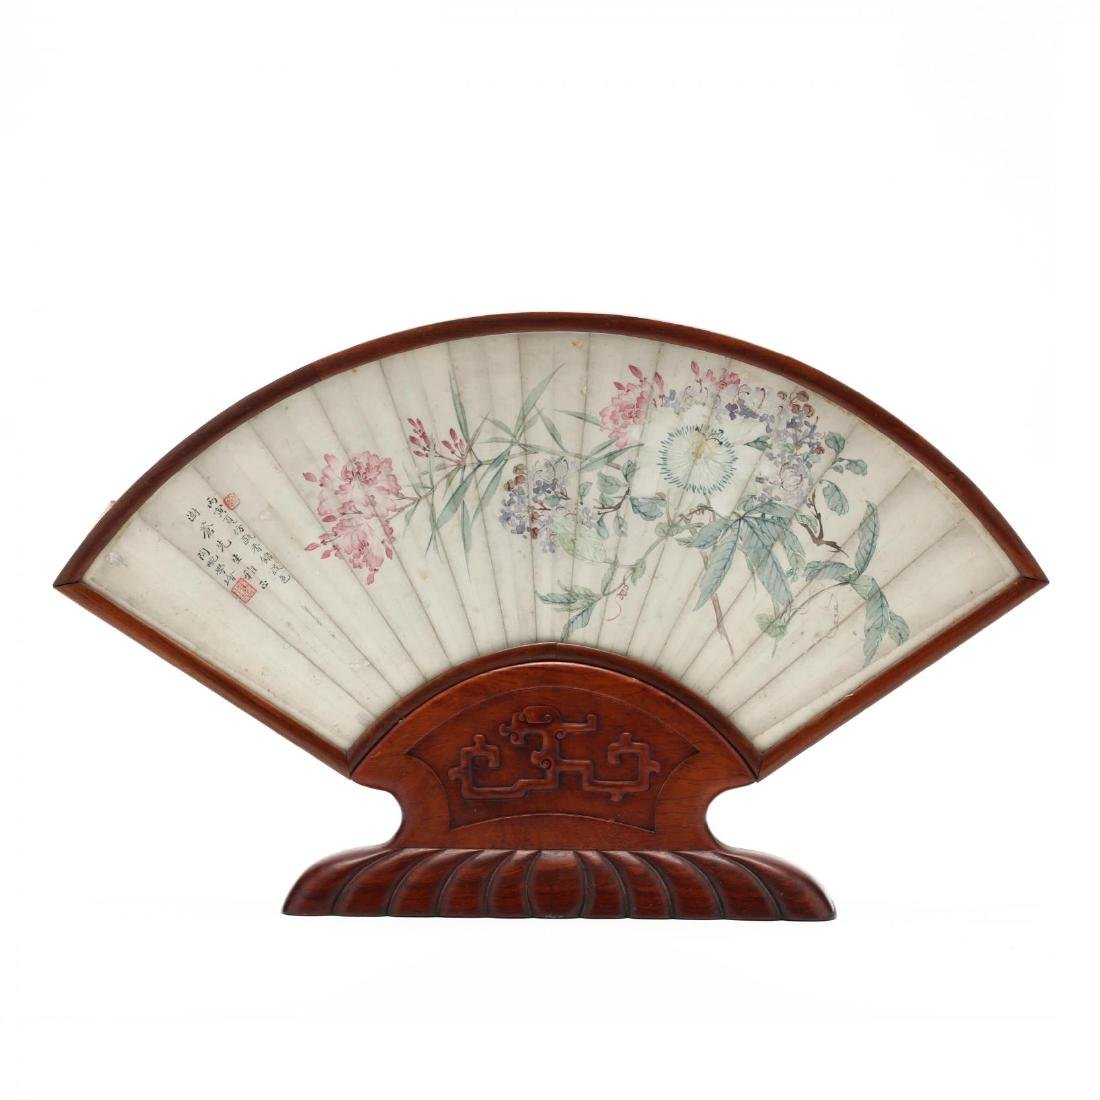 A Matched Pair of Chinese Framed Fan Face Paintings - 5